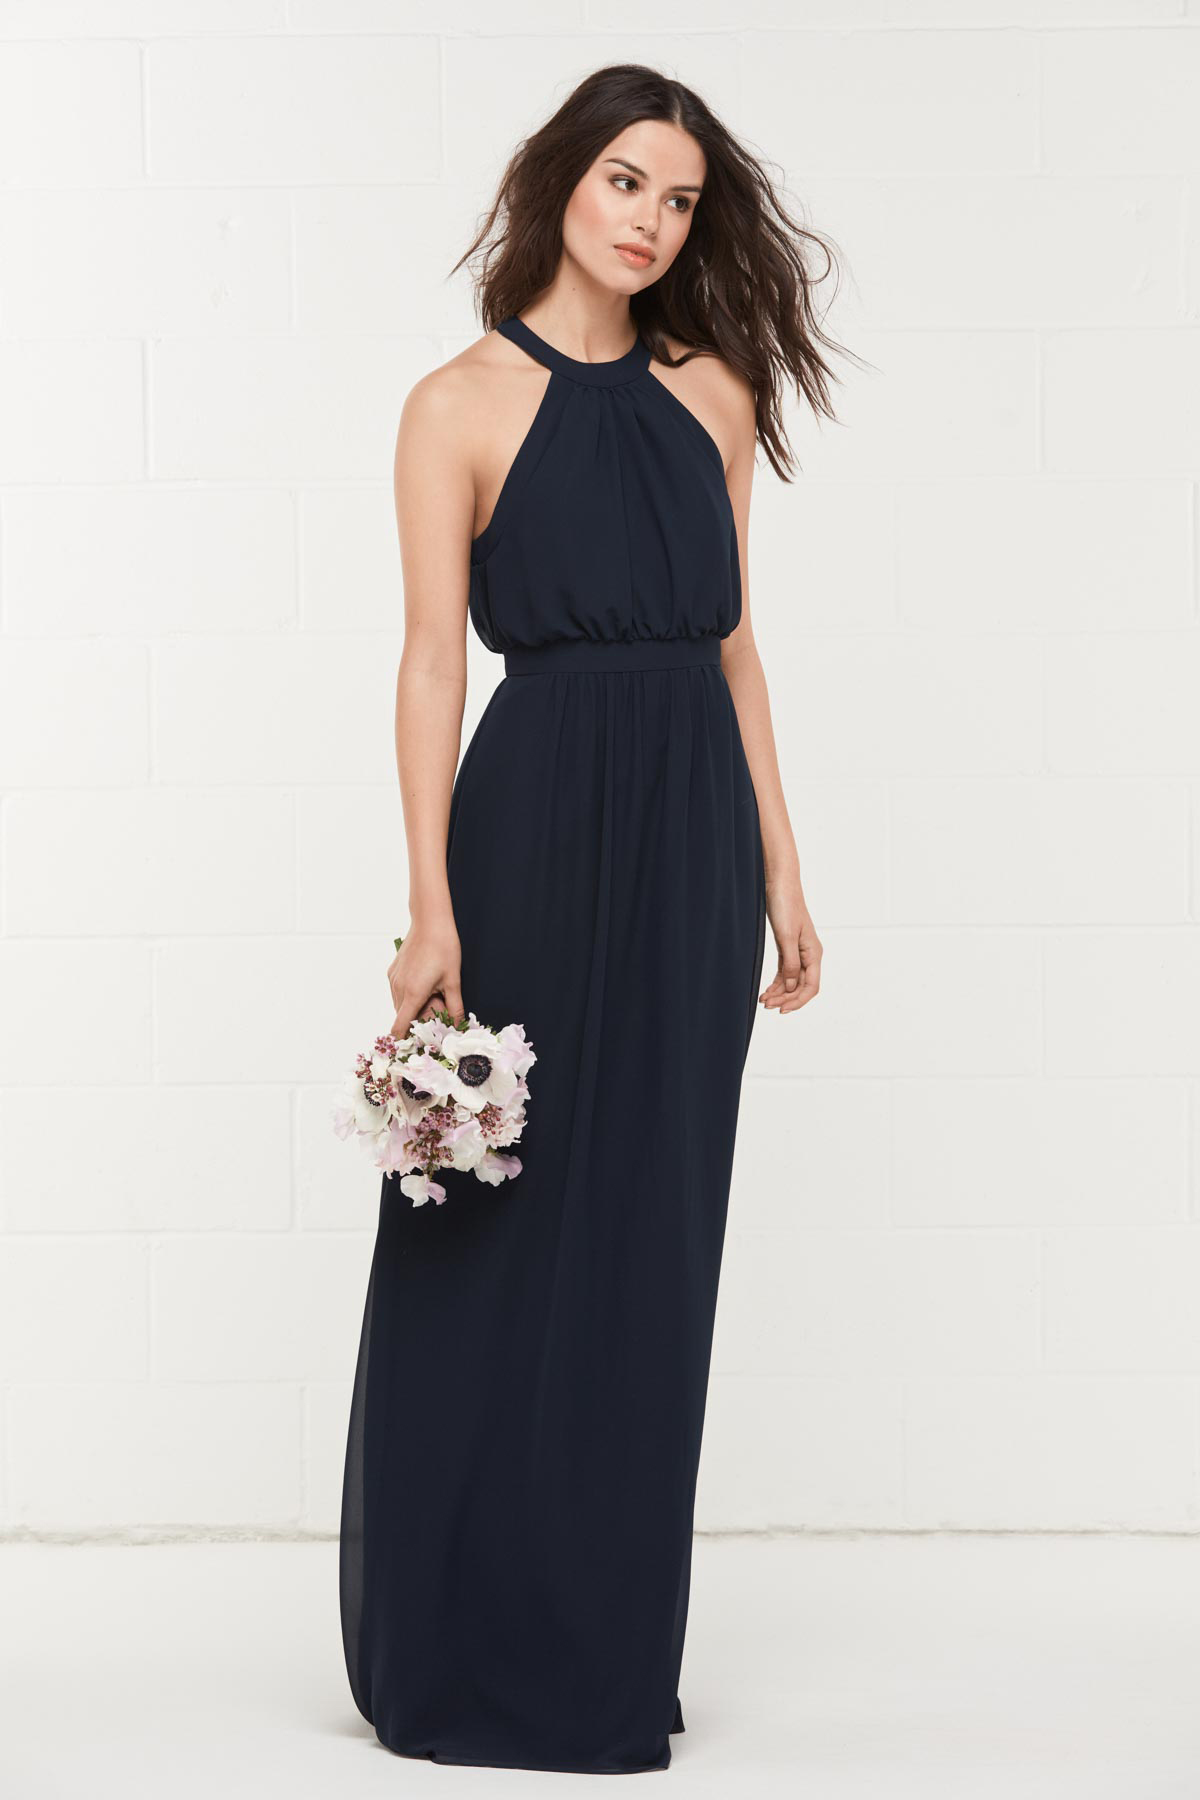 403 Bridesmaids Dress By Watters